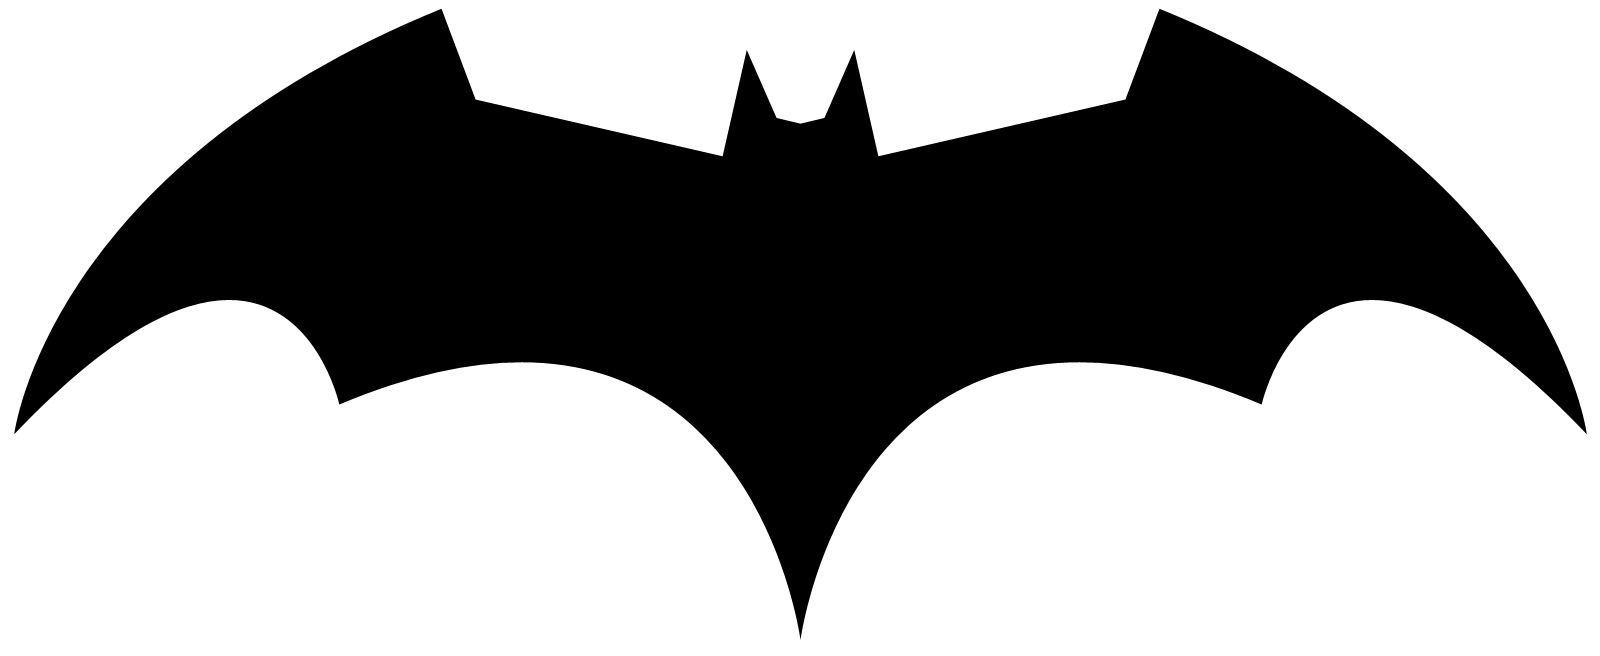 Free Batman Symbols Download Free Clip Art Free Clip Art